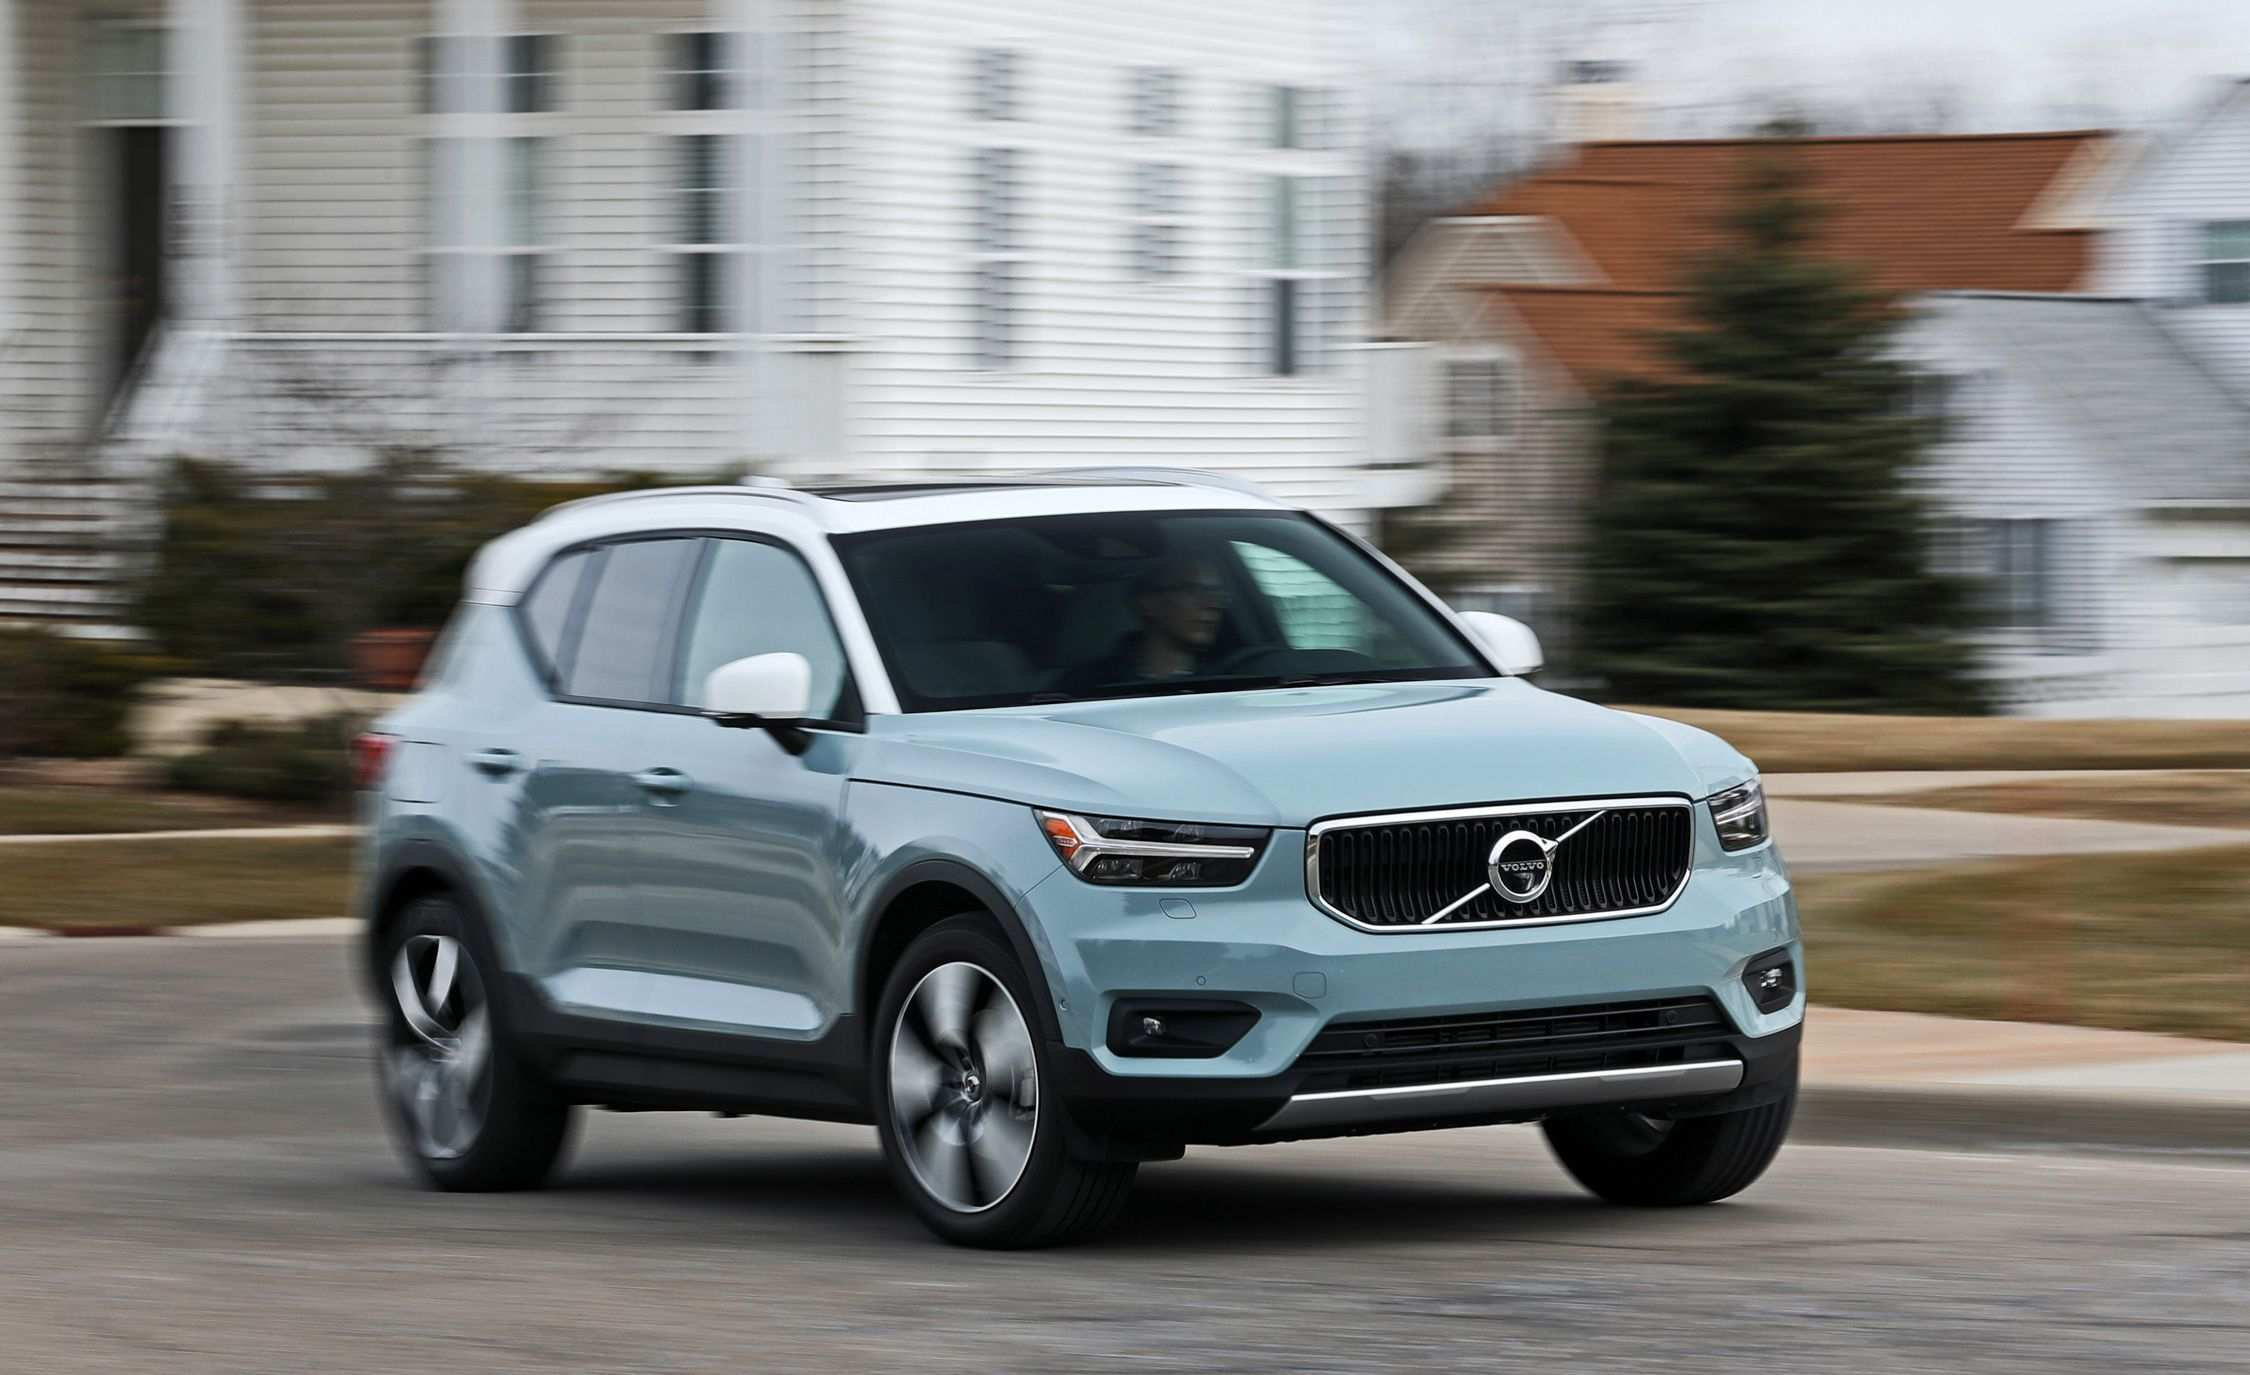 99 All New Volvo Xc40 Dimensions 2019 Price with Volvo Xc40 Dimensions 2019